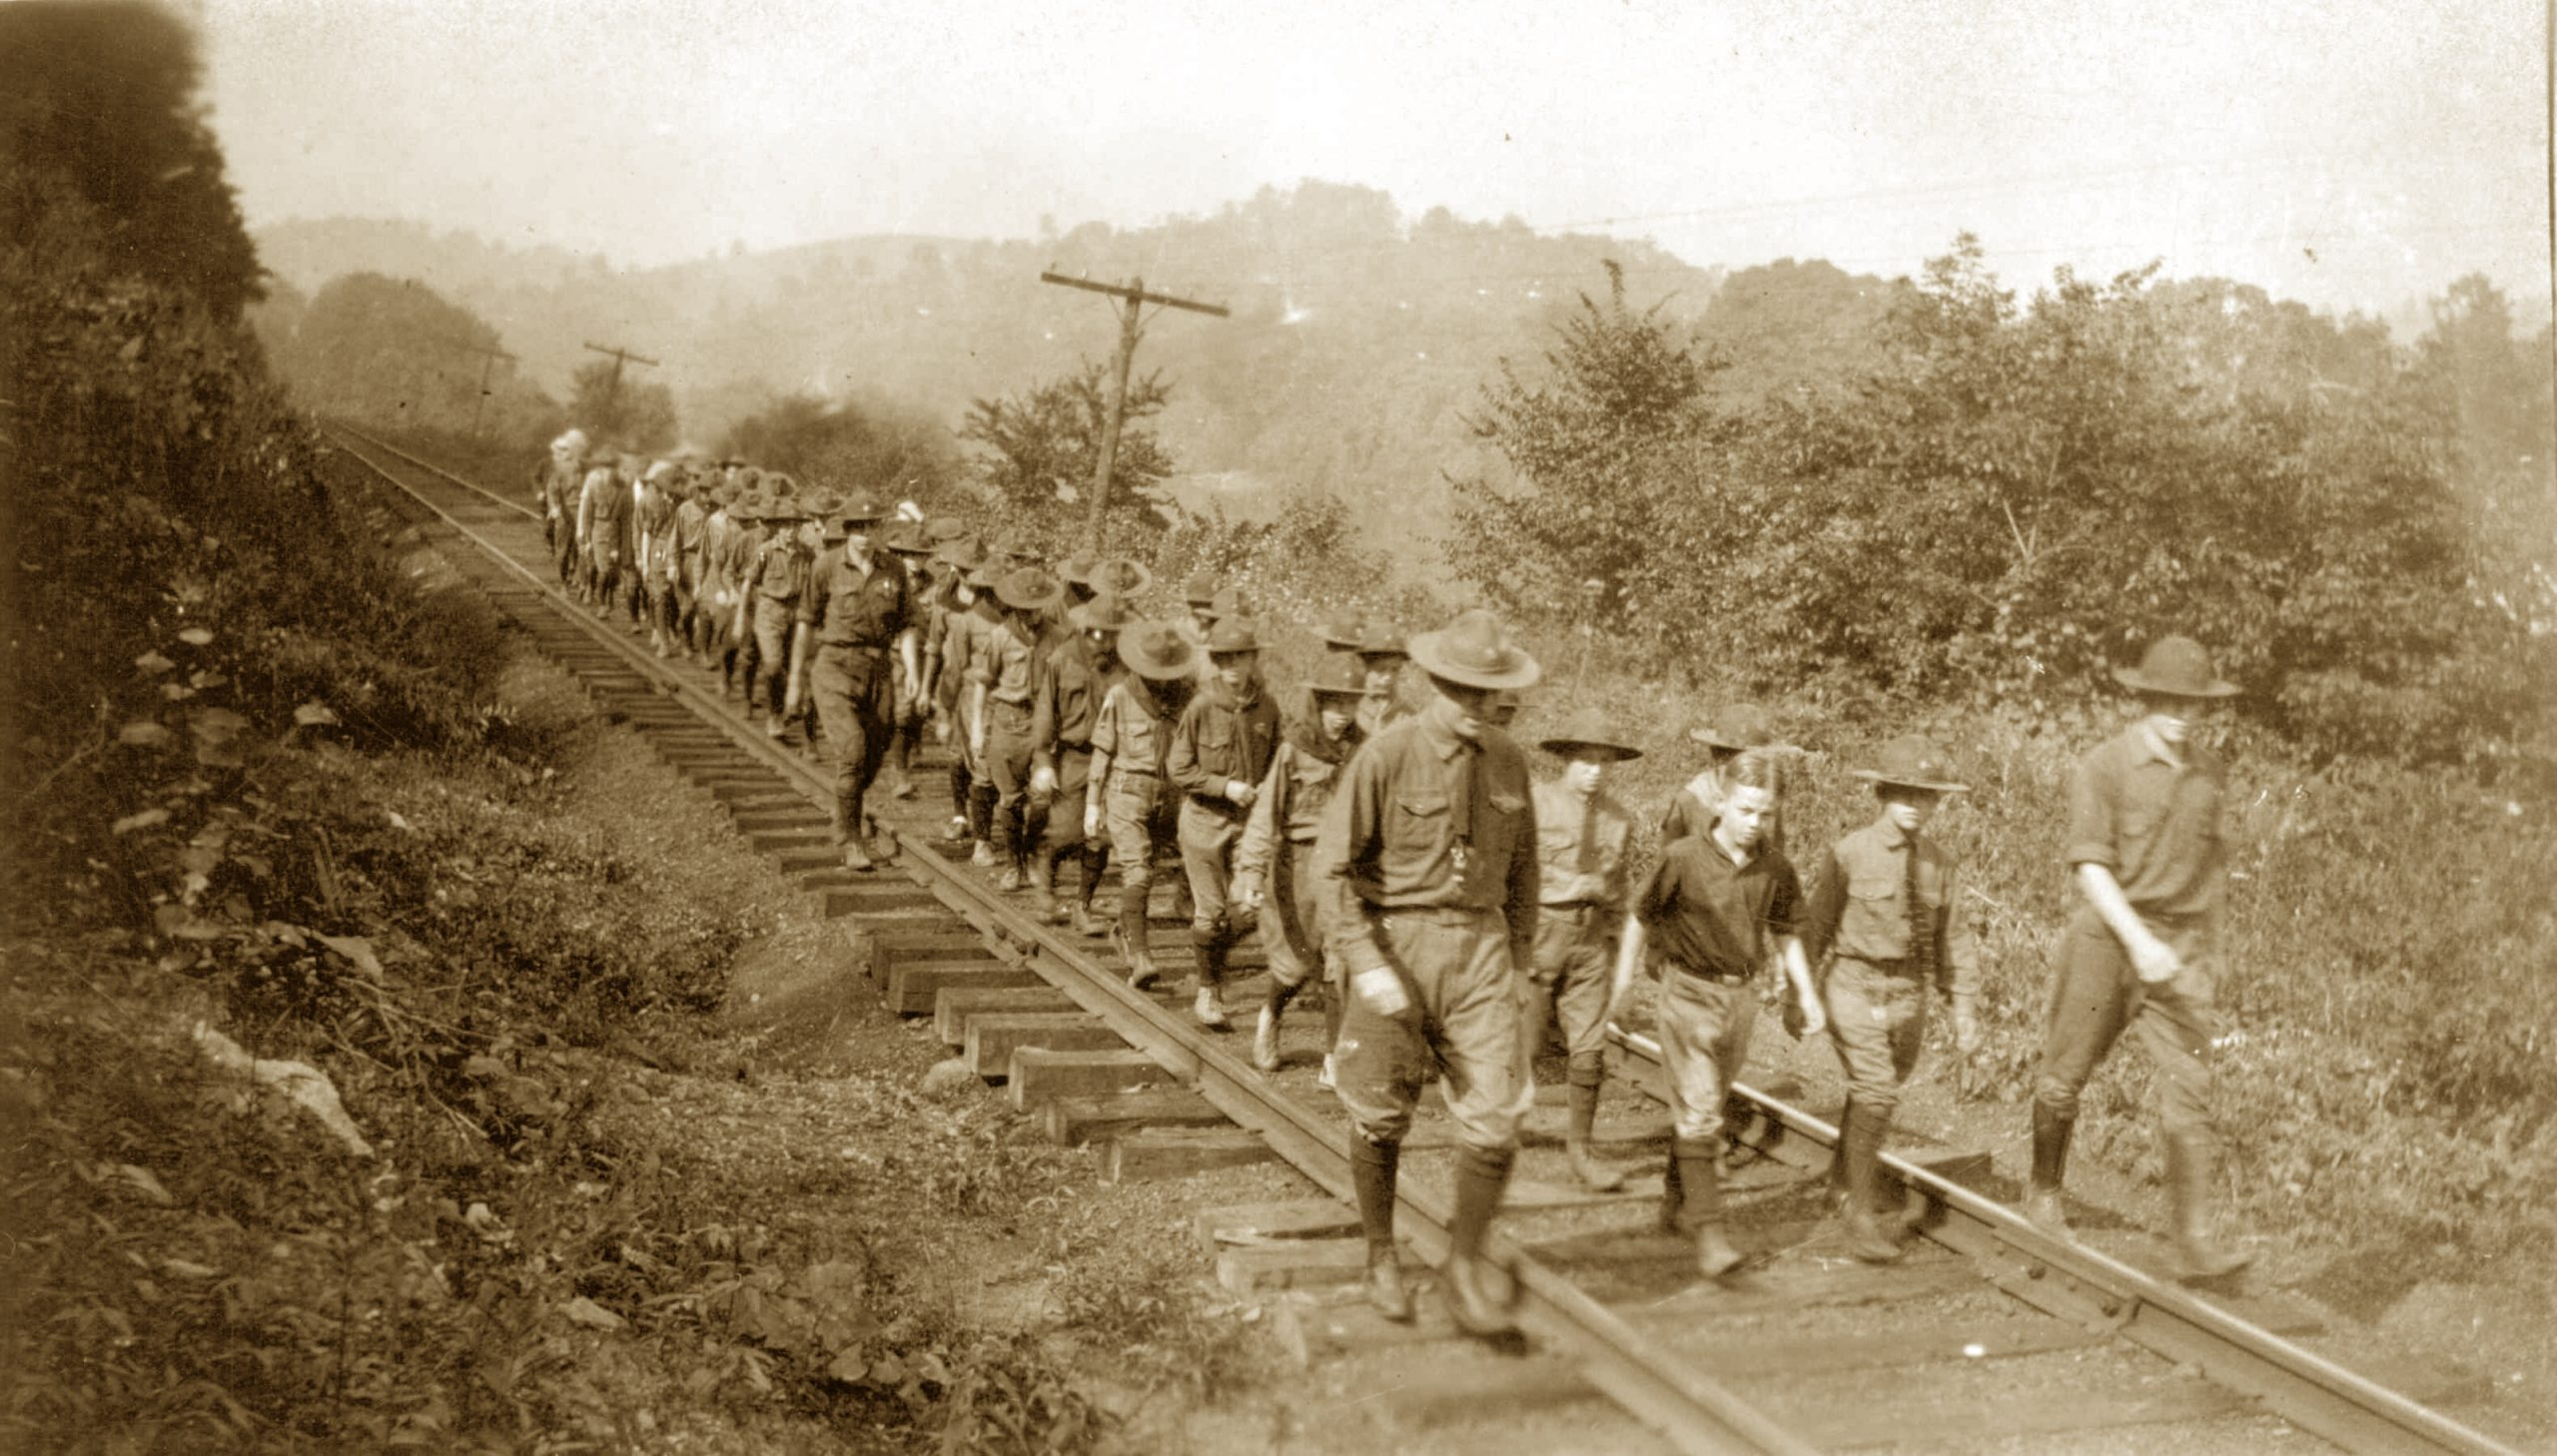 Scouts hike along the railroad tracks in 1921